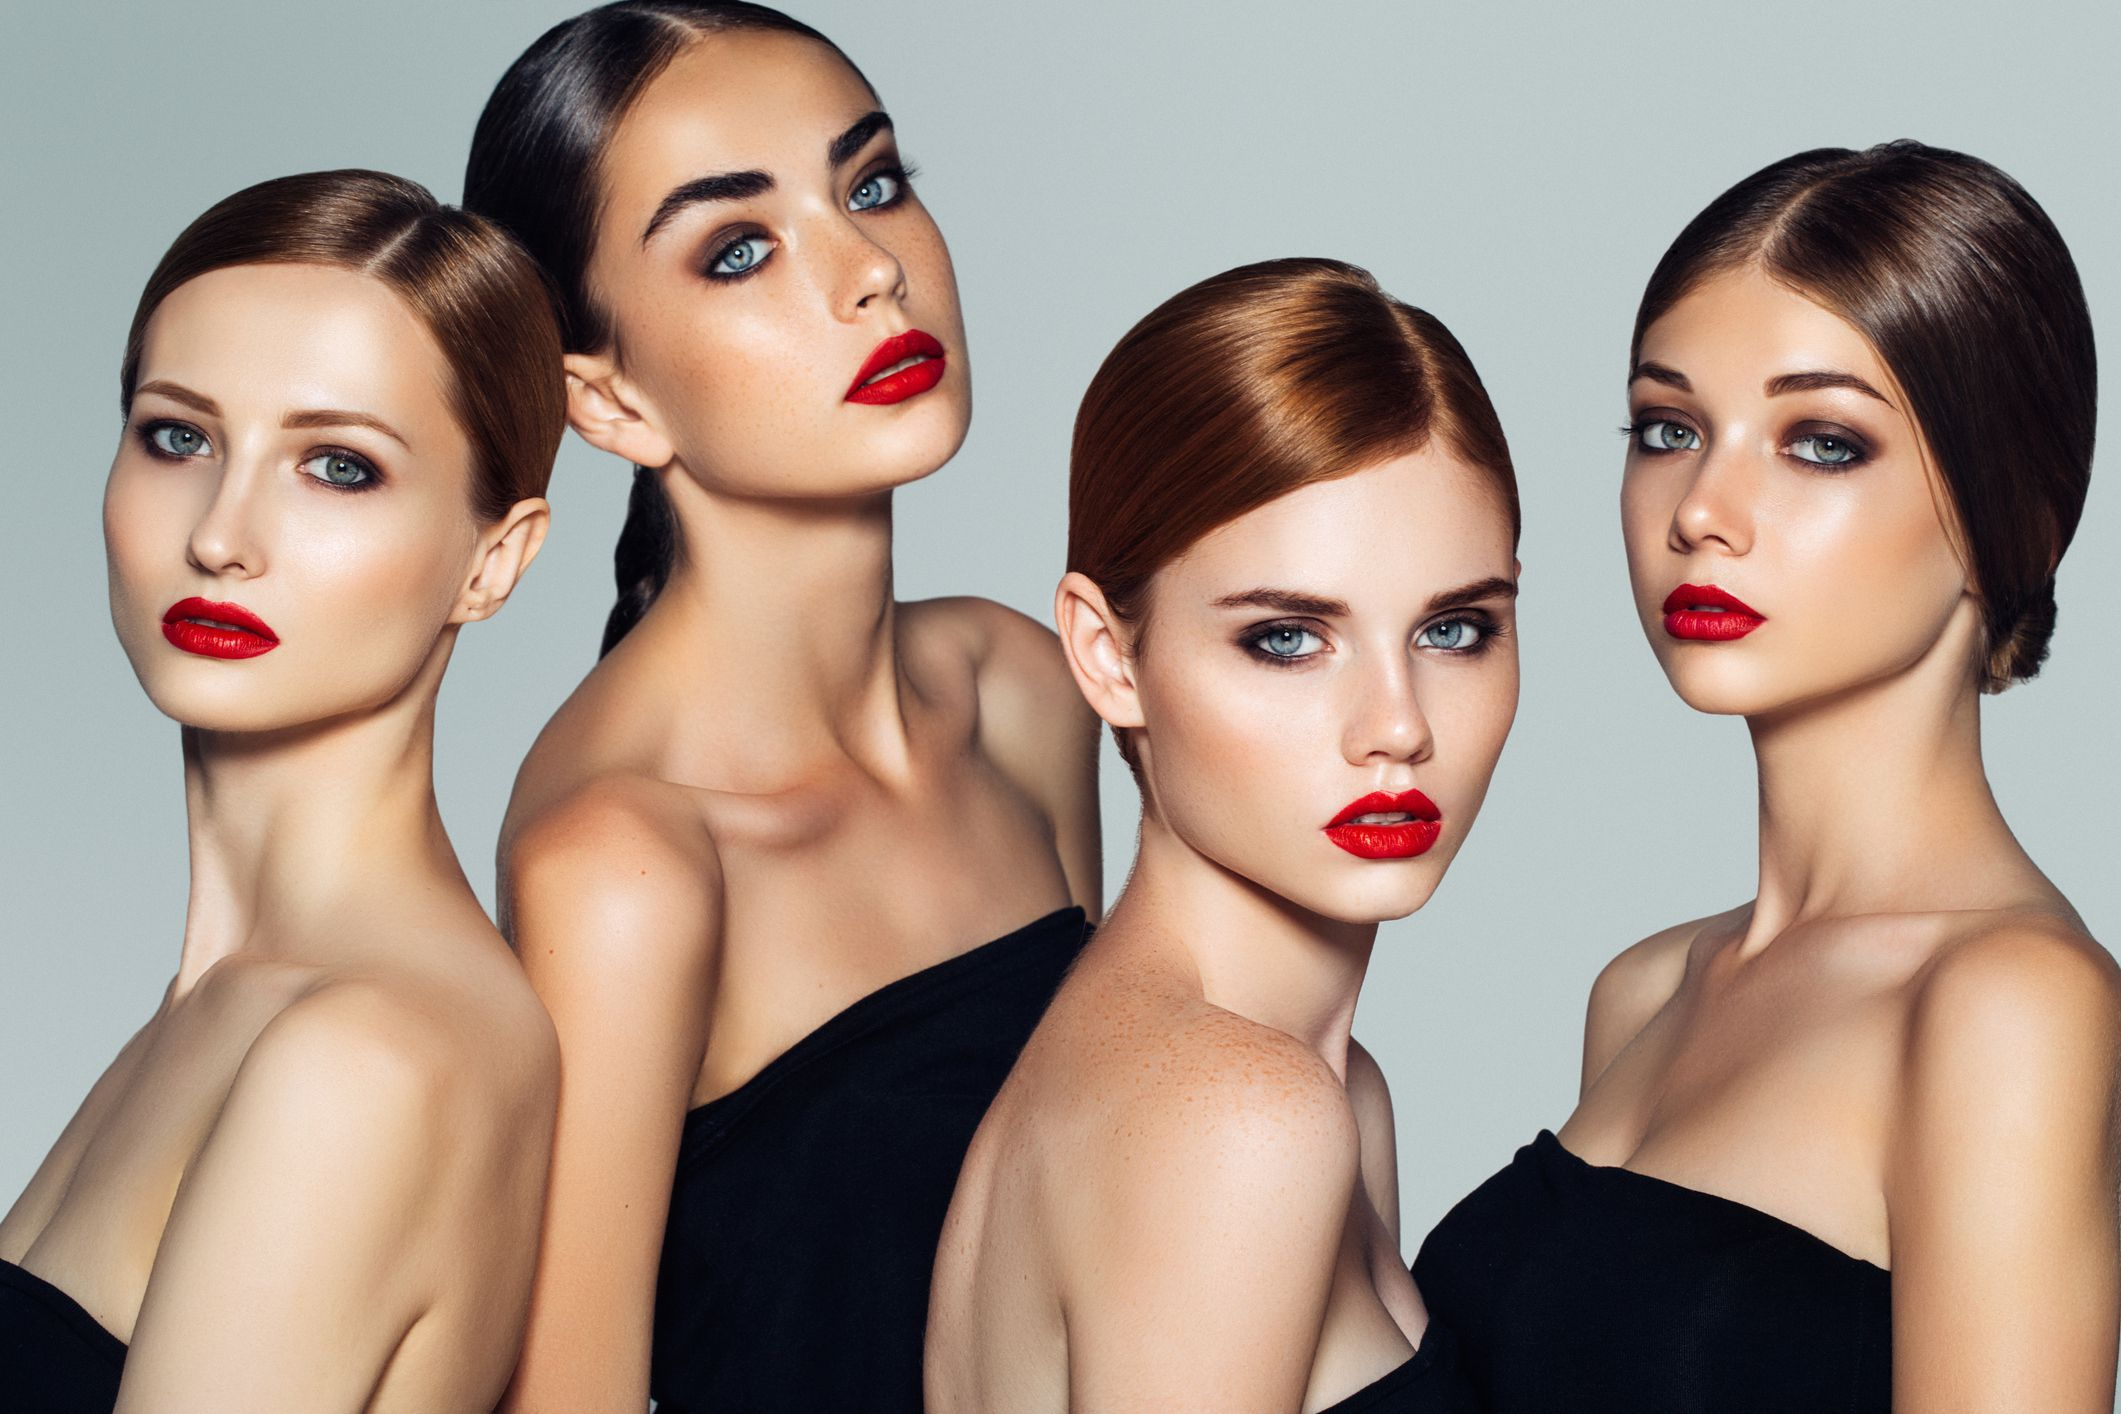 The Top Female Modeling Agencies in New York